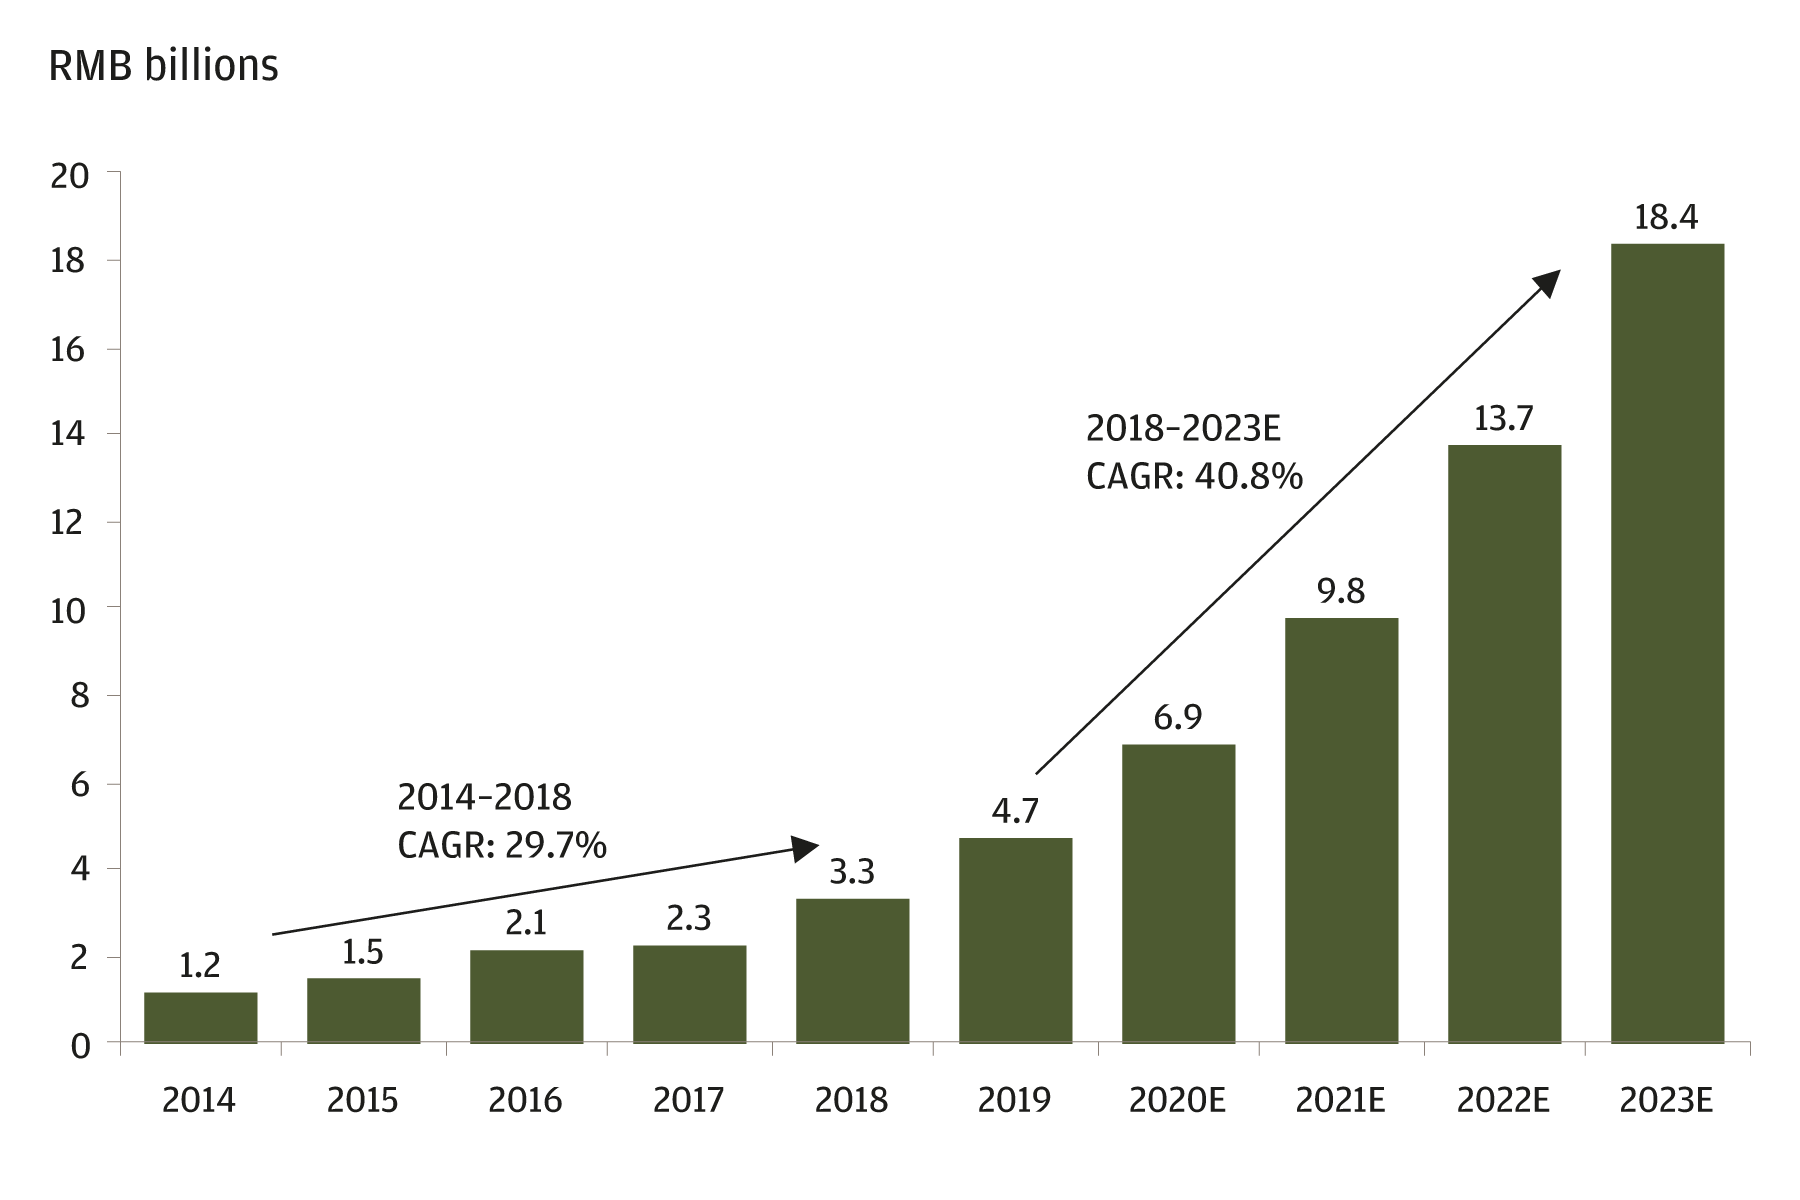 This chart shows the historical and future projected growth rate of the biologics outsourcing market in China from 2014 to 2023. The figures from 2020 through 2023 are forecasts. From 2014 to 2018, the market grew at a compound annual growth rate (CAGR) of 29.7%. Its projected compound annual growth rate from 2018 to 2023 is 40.8%.